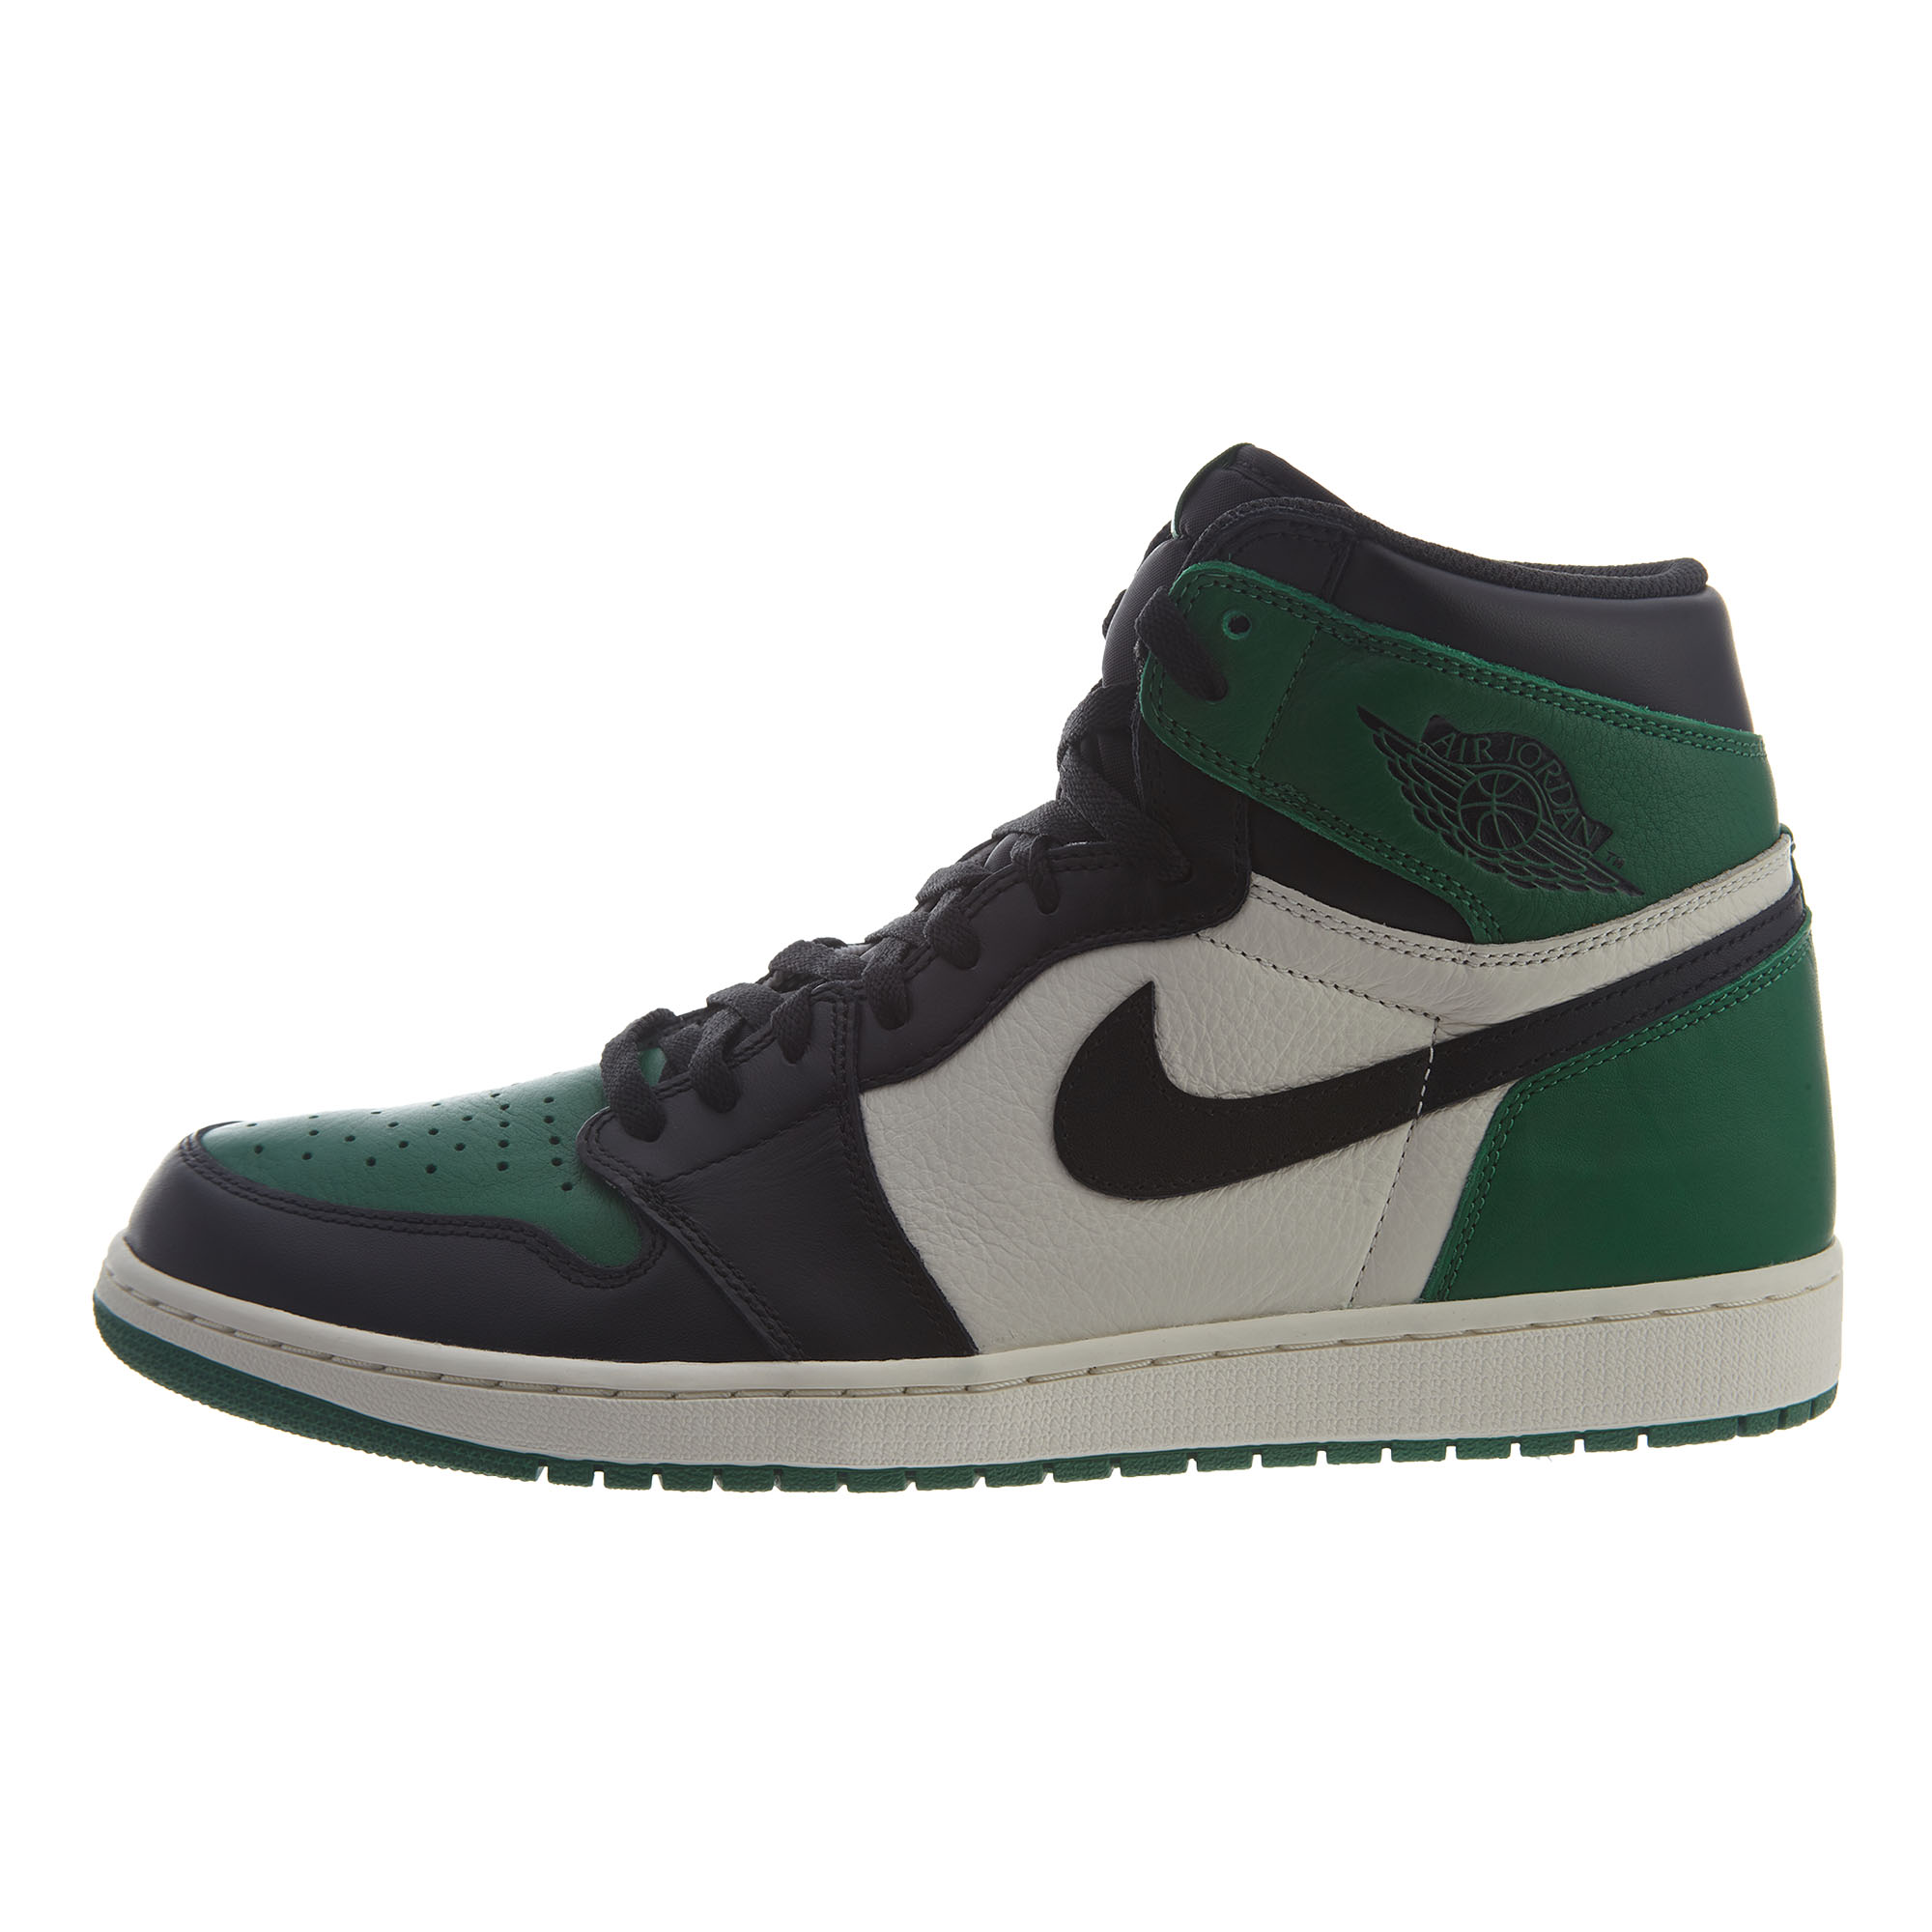 e114a8c50508 Details about Nike Mens Air Jordan 1 Retro High OG Shoes 555088-302